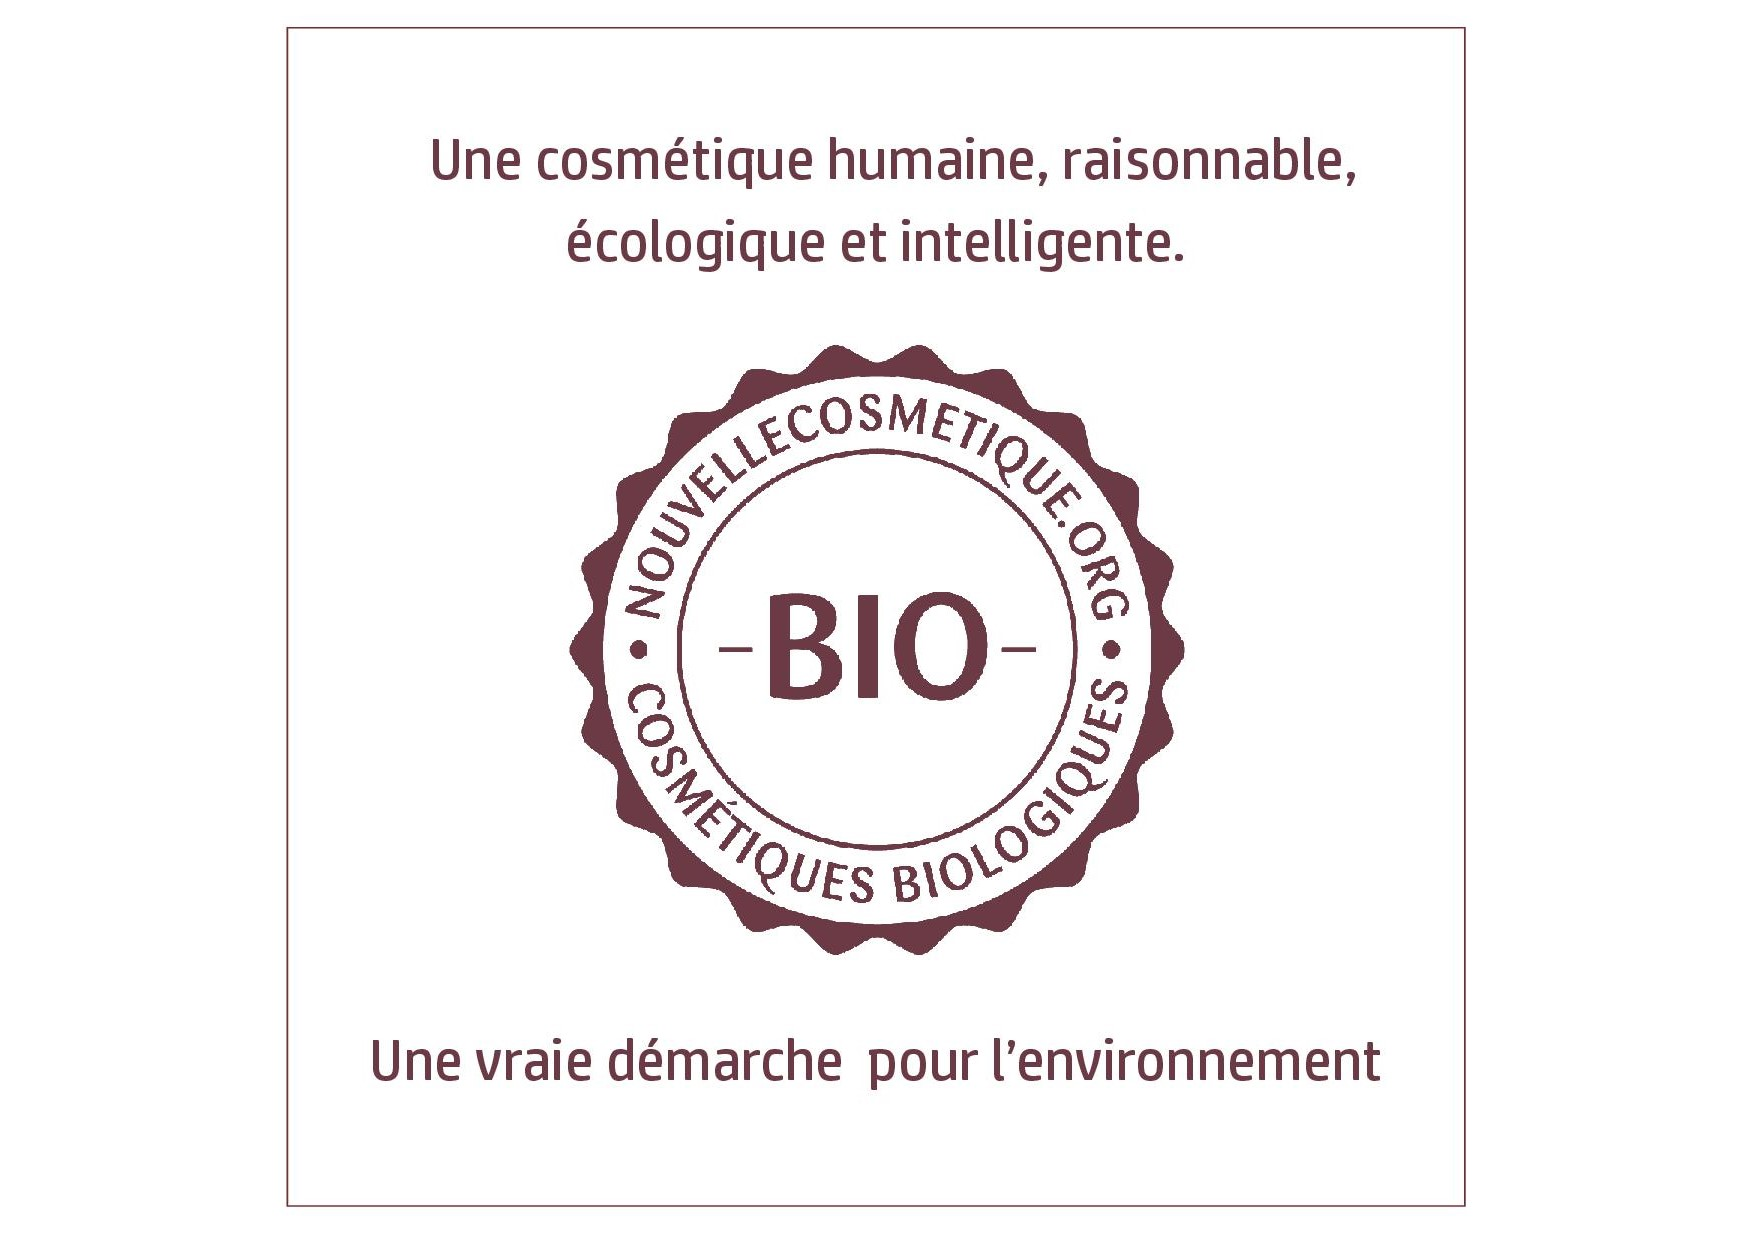 label bio nouvelle cosmetique